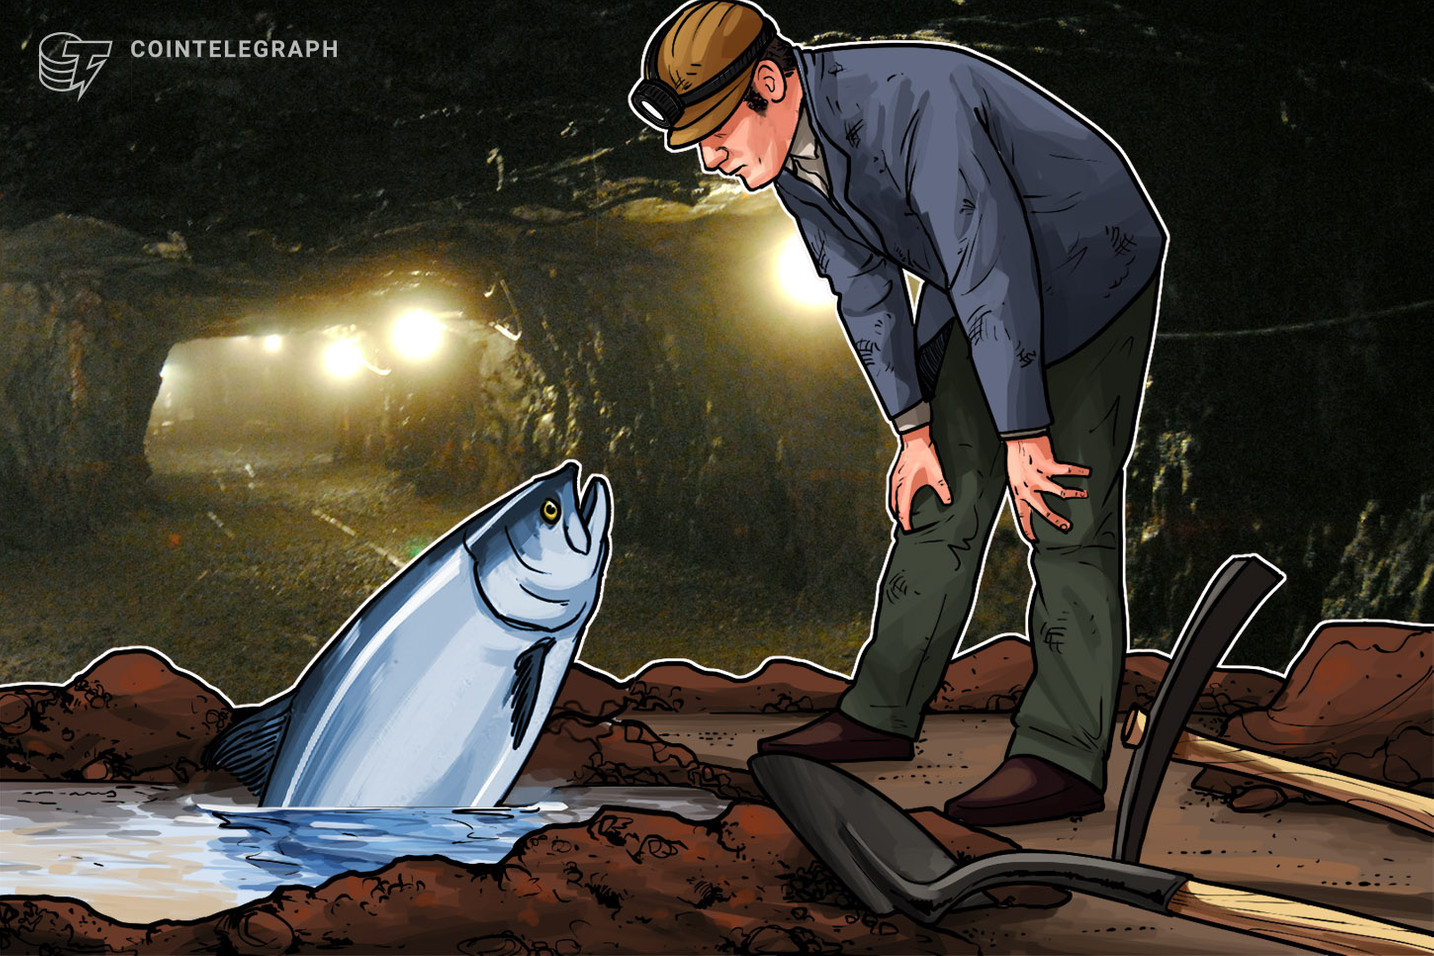 China: Locals Allegedly Laying Cable via Fish Ponds to Steal Oil Well Power for BTC Mining